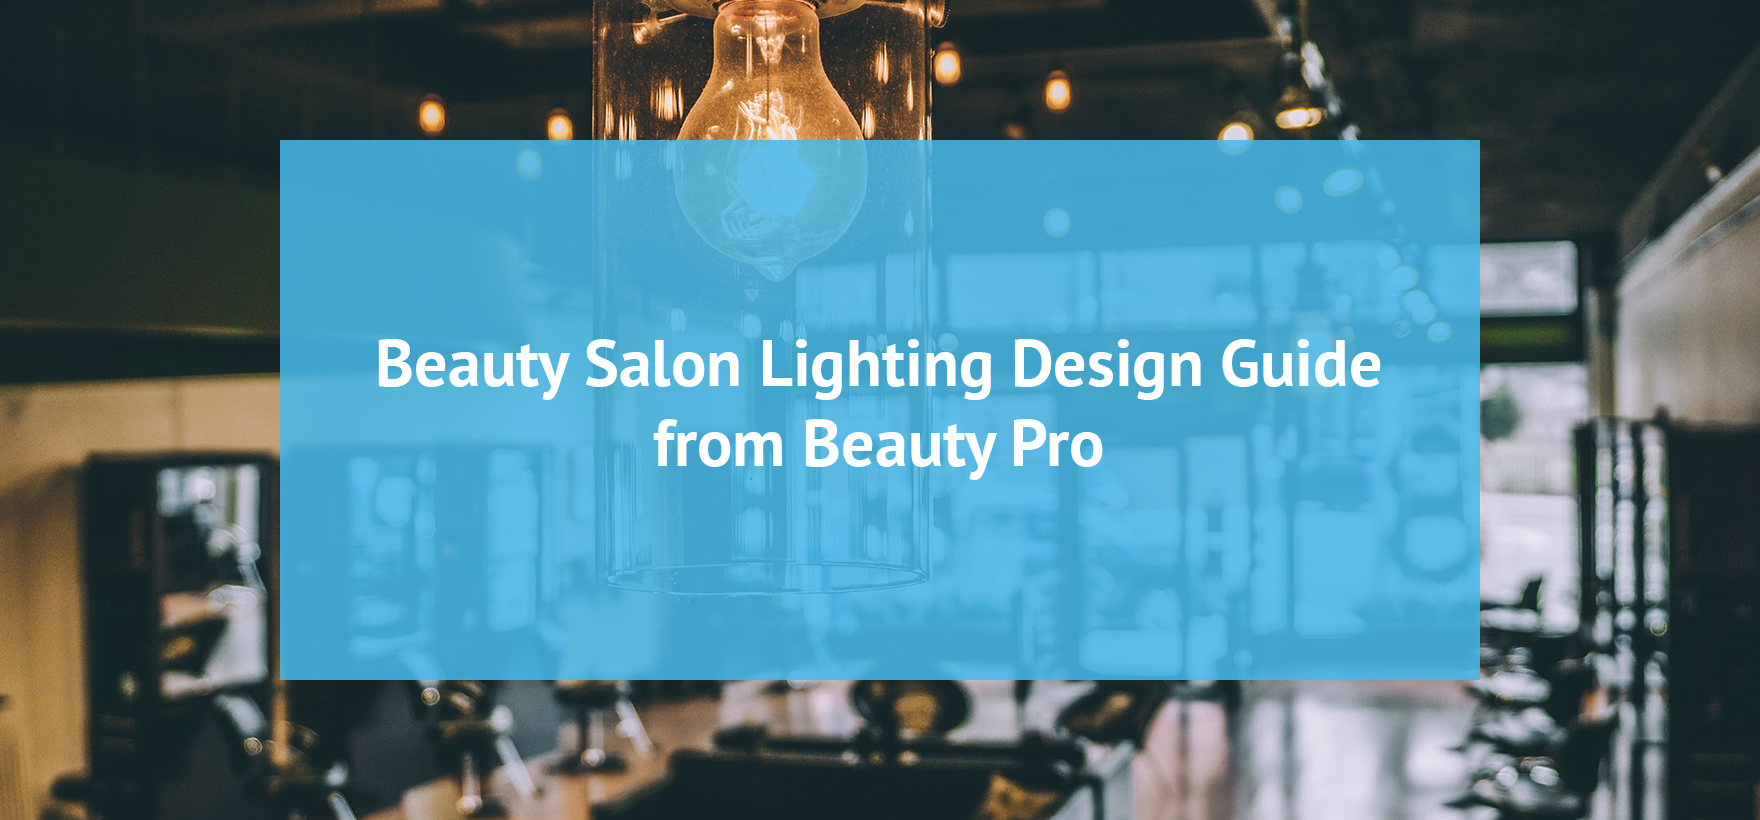 Beauty Salon Lighting Design Guide from Beauty Pro